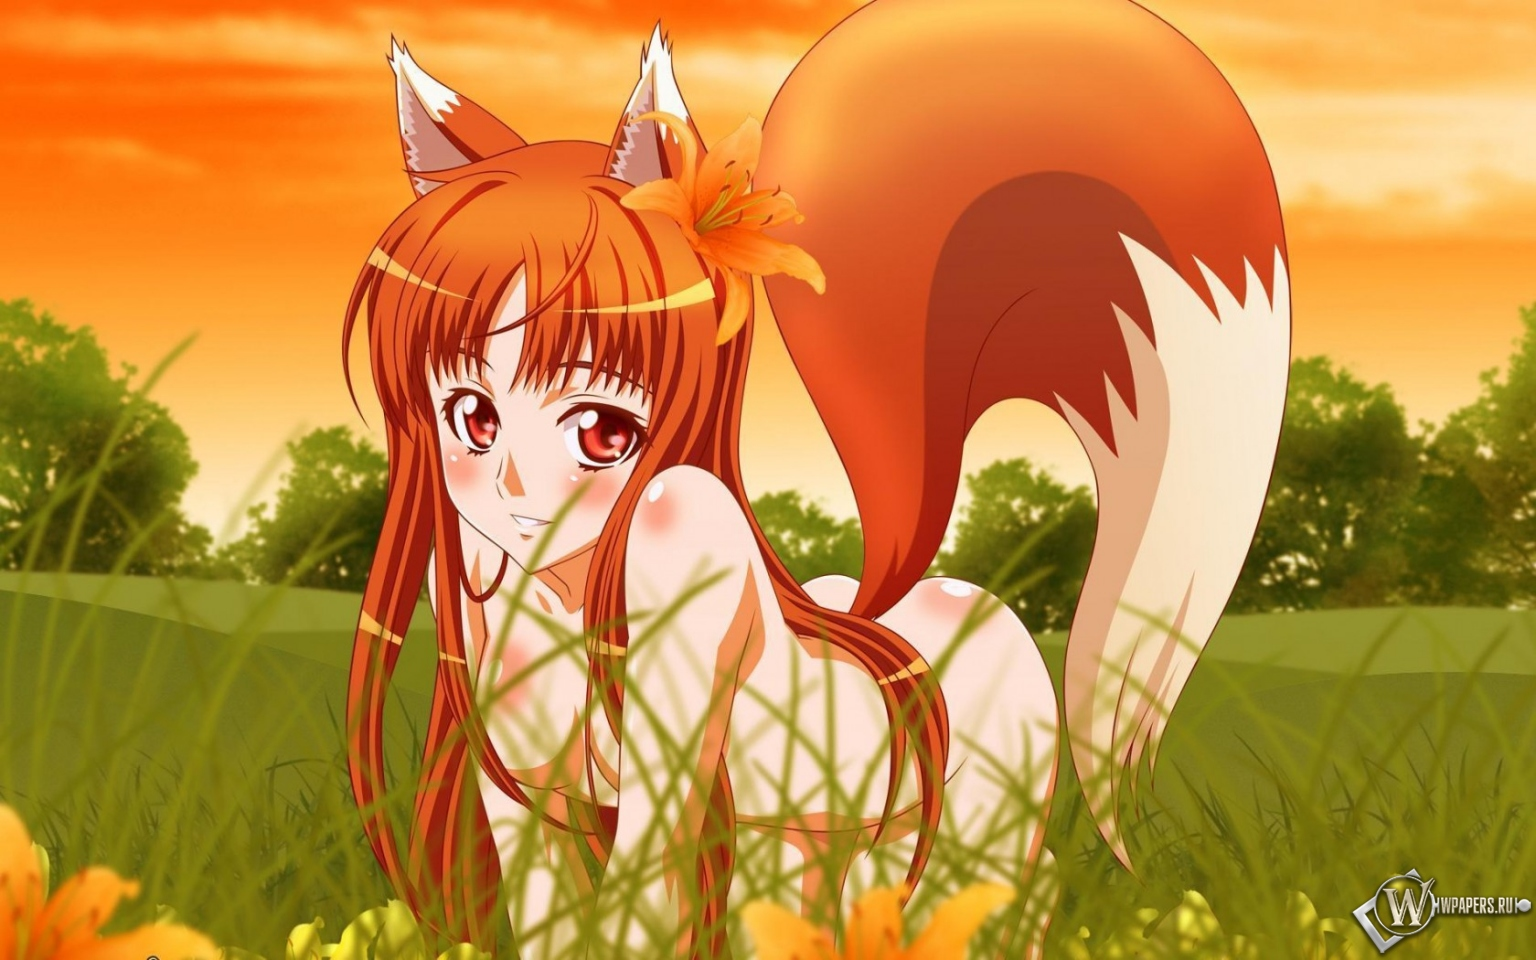 http://wpapers.ru/wallpapers/Anime/9955/1536x960_Anime-fox-girl.jpg